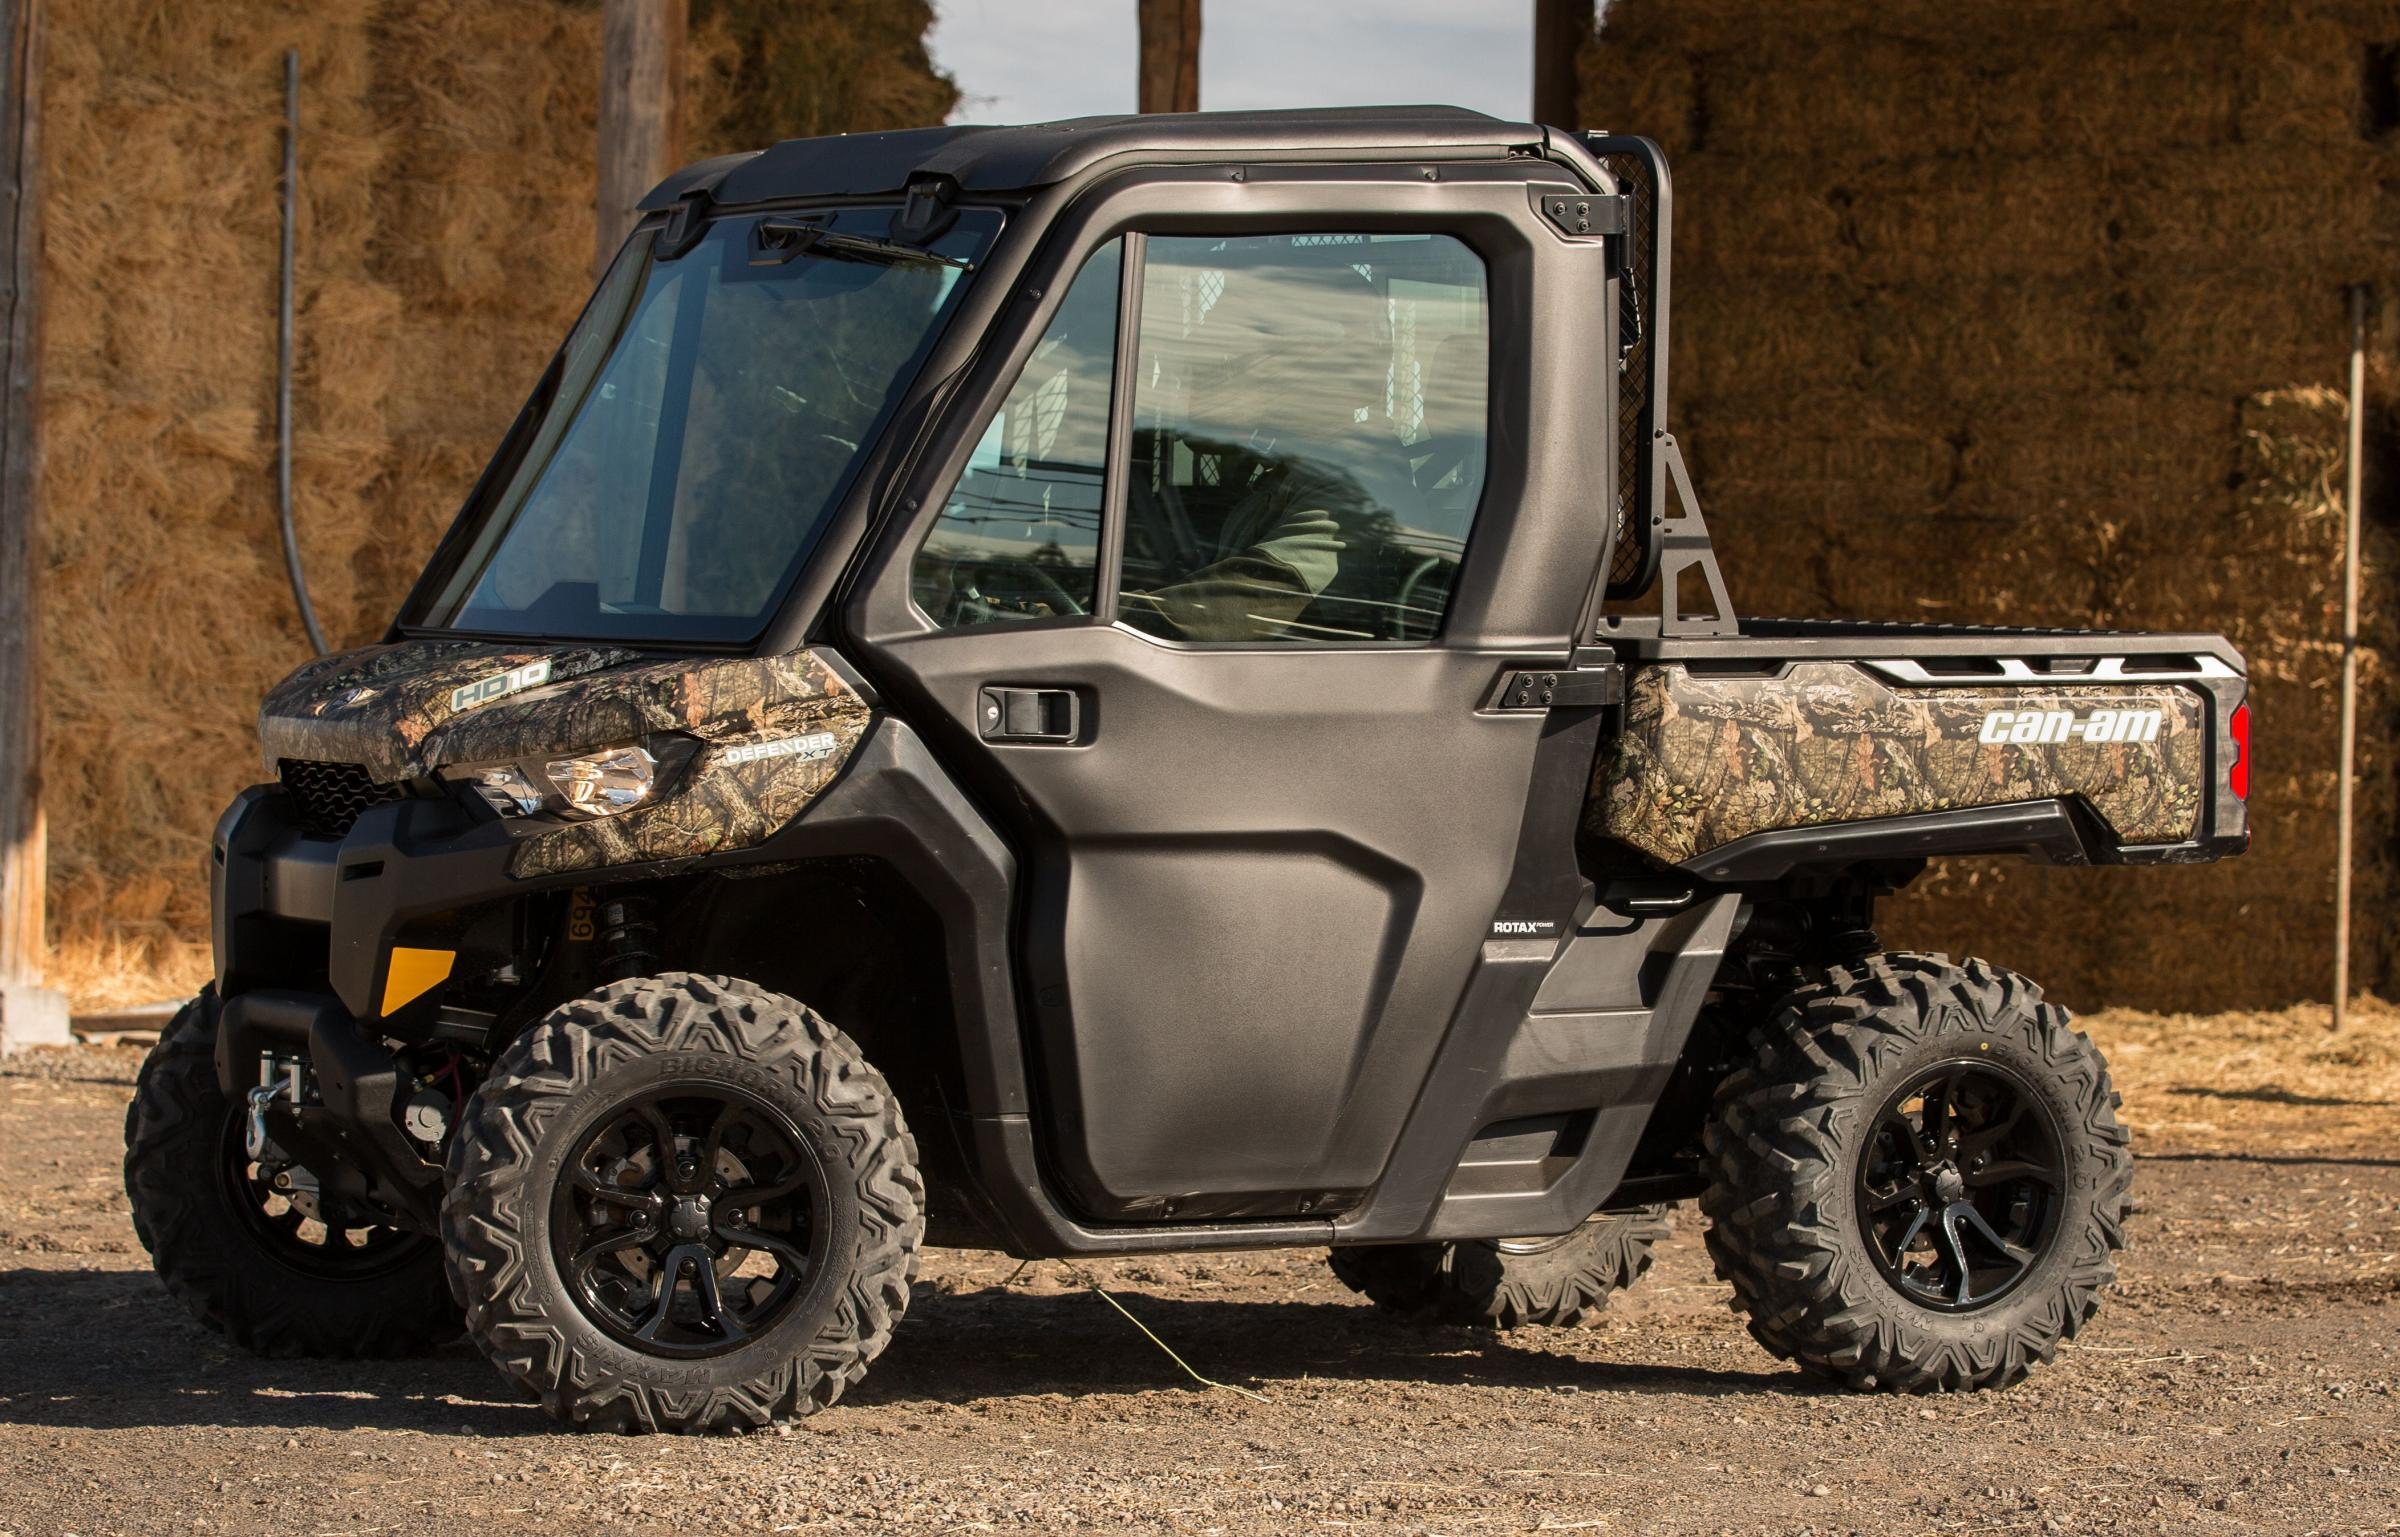 CAN-AM'S Defender XT with full-on cab and camo paintwork